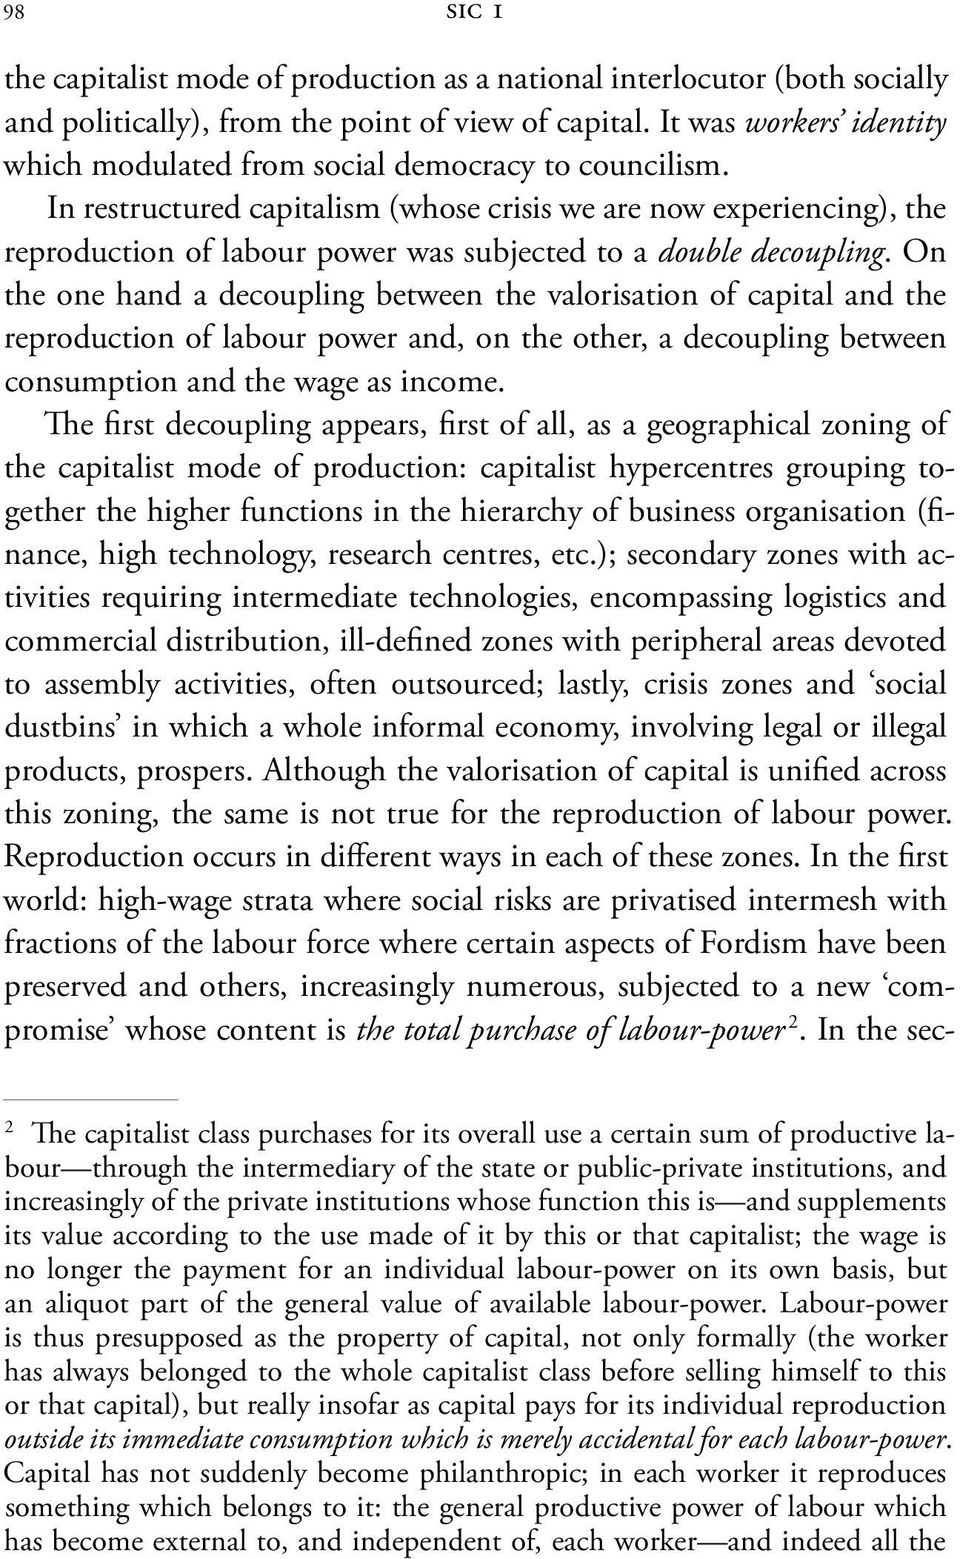 In restructured capitalism (whose crisis we are now experiencing), the reproduction of labour power was subjected to a double decoupling.